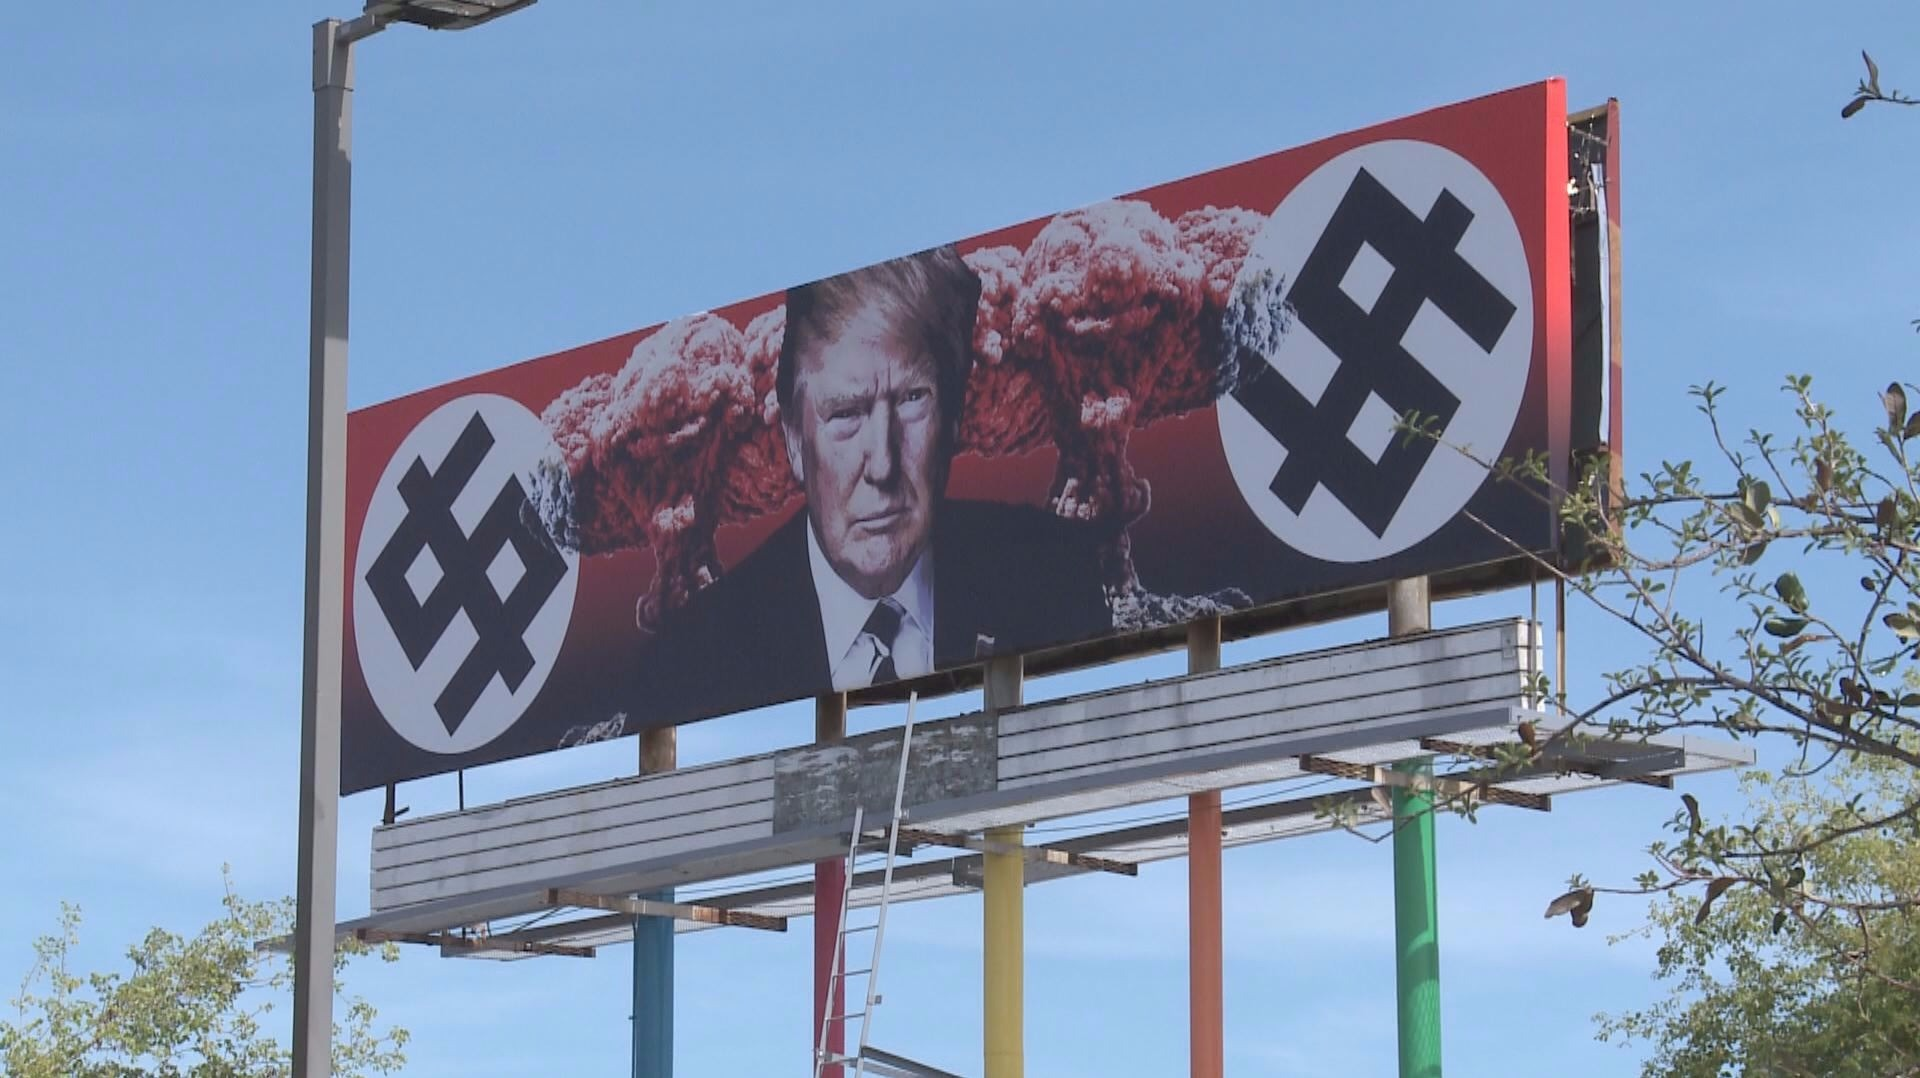 Owner of Phoenix Trump billboard: It will stay up as long as Trump is president